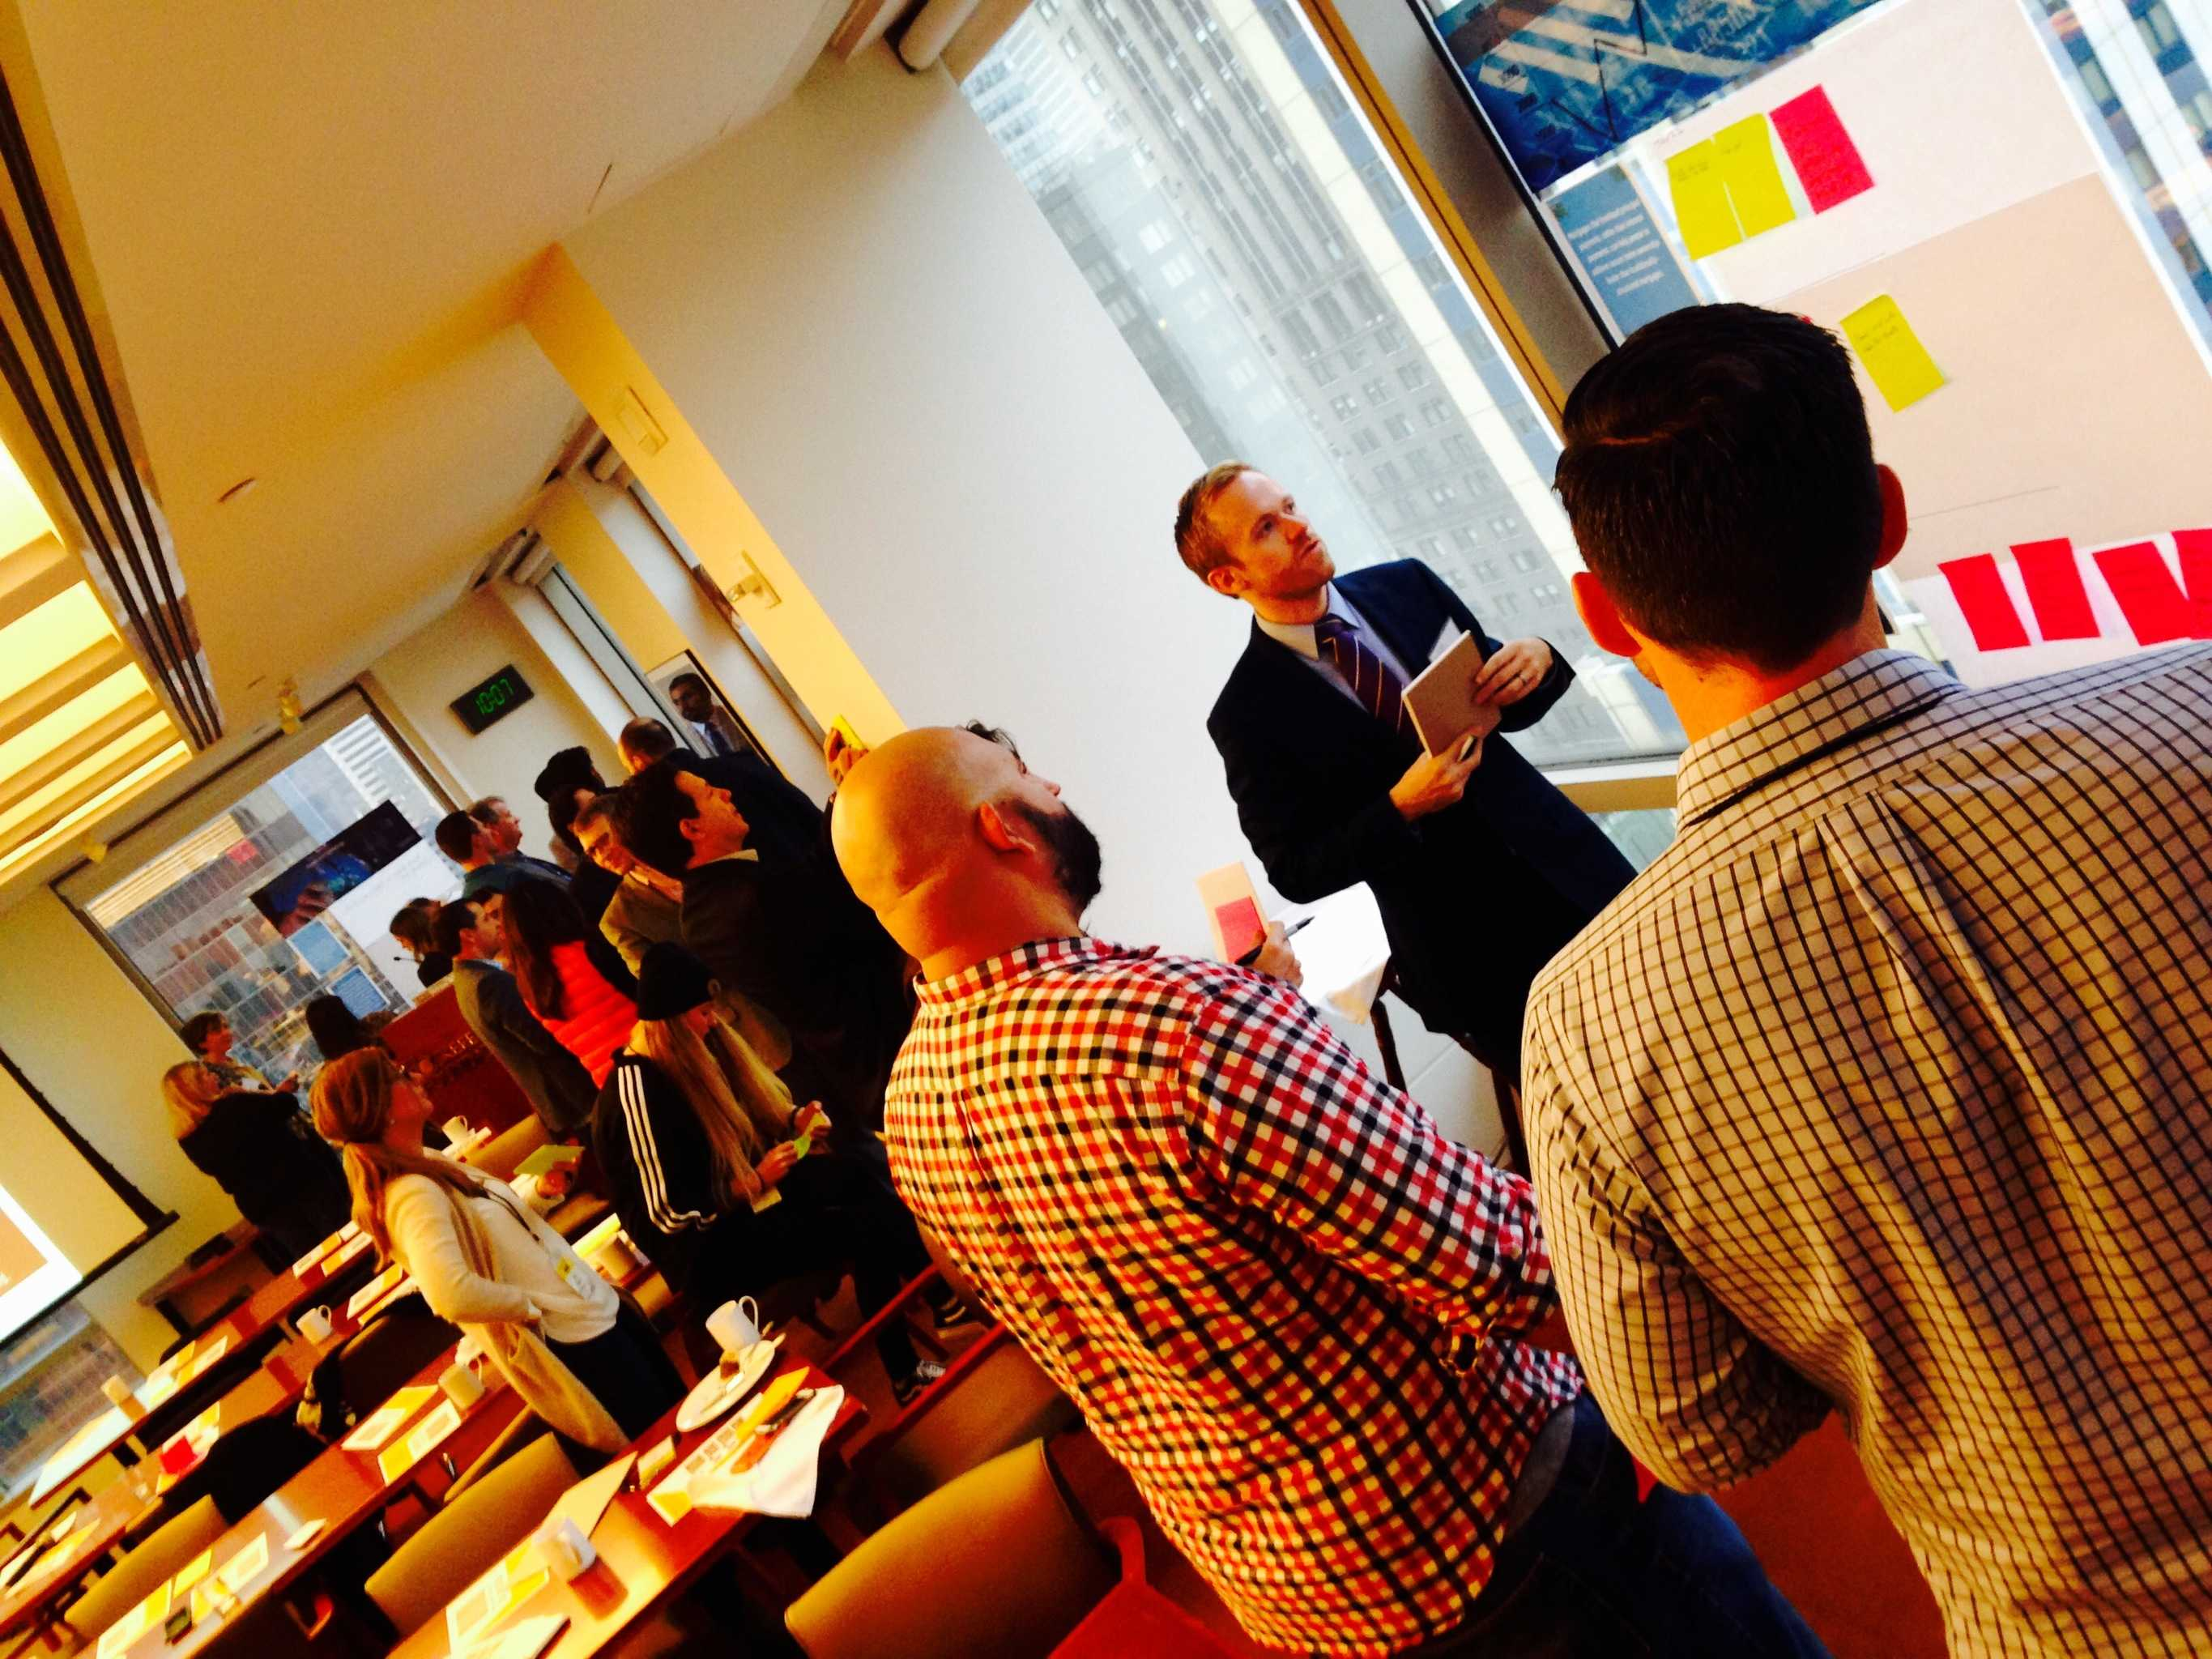 GKI staff facilitate insight sourcing at the Fast Company workshop. Photo Credit: Andrew Gerard